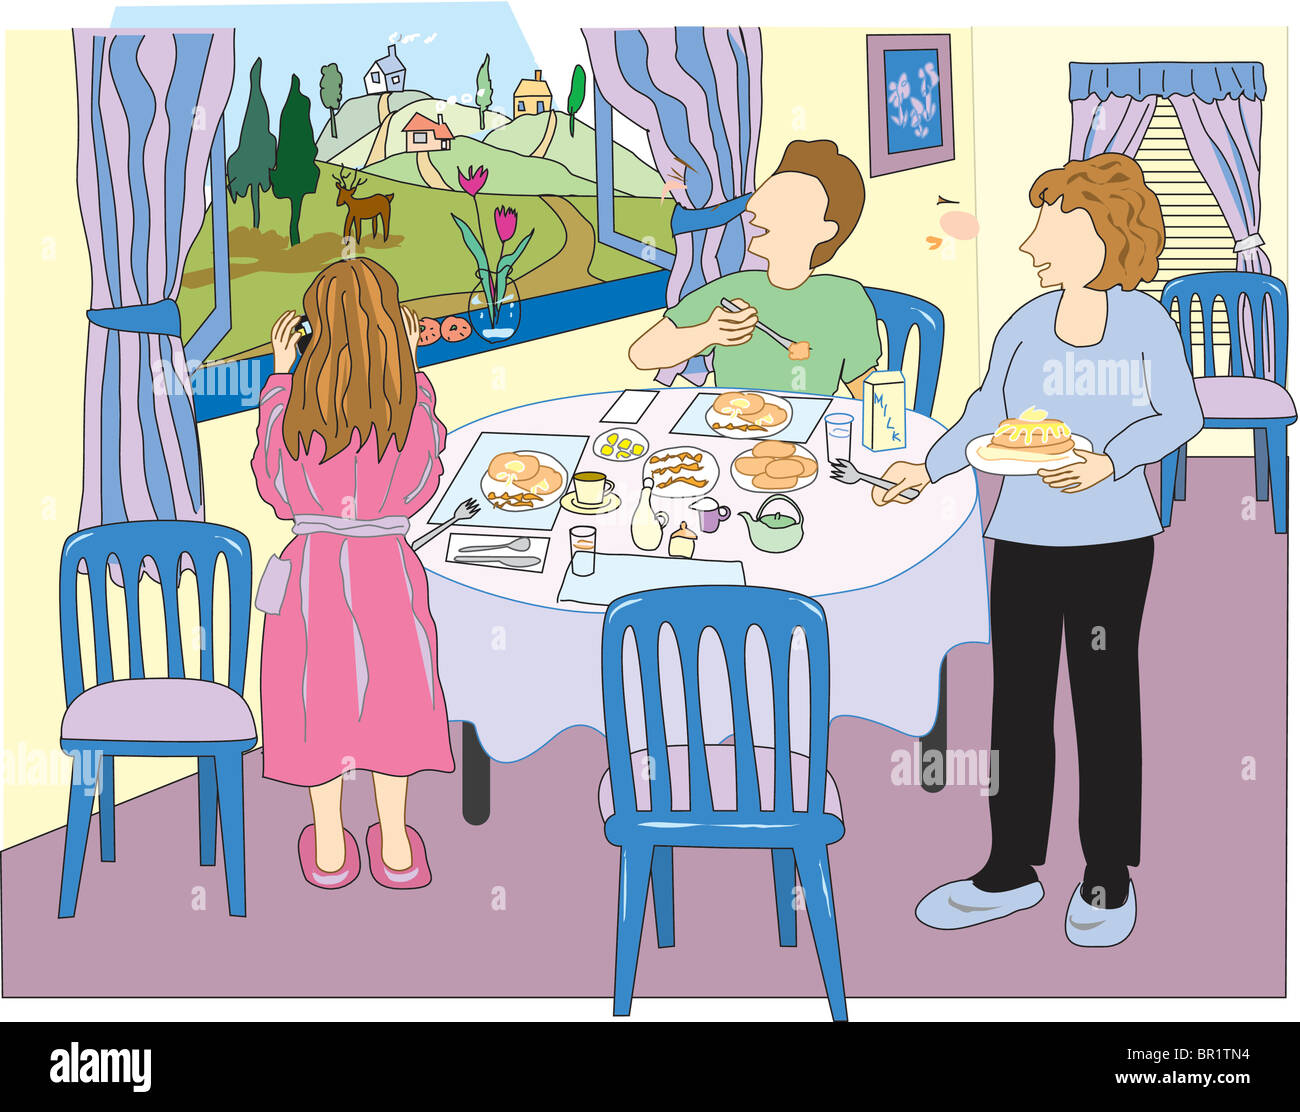 An illustration of a family eating breakfast together Stock Photo